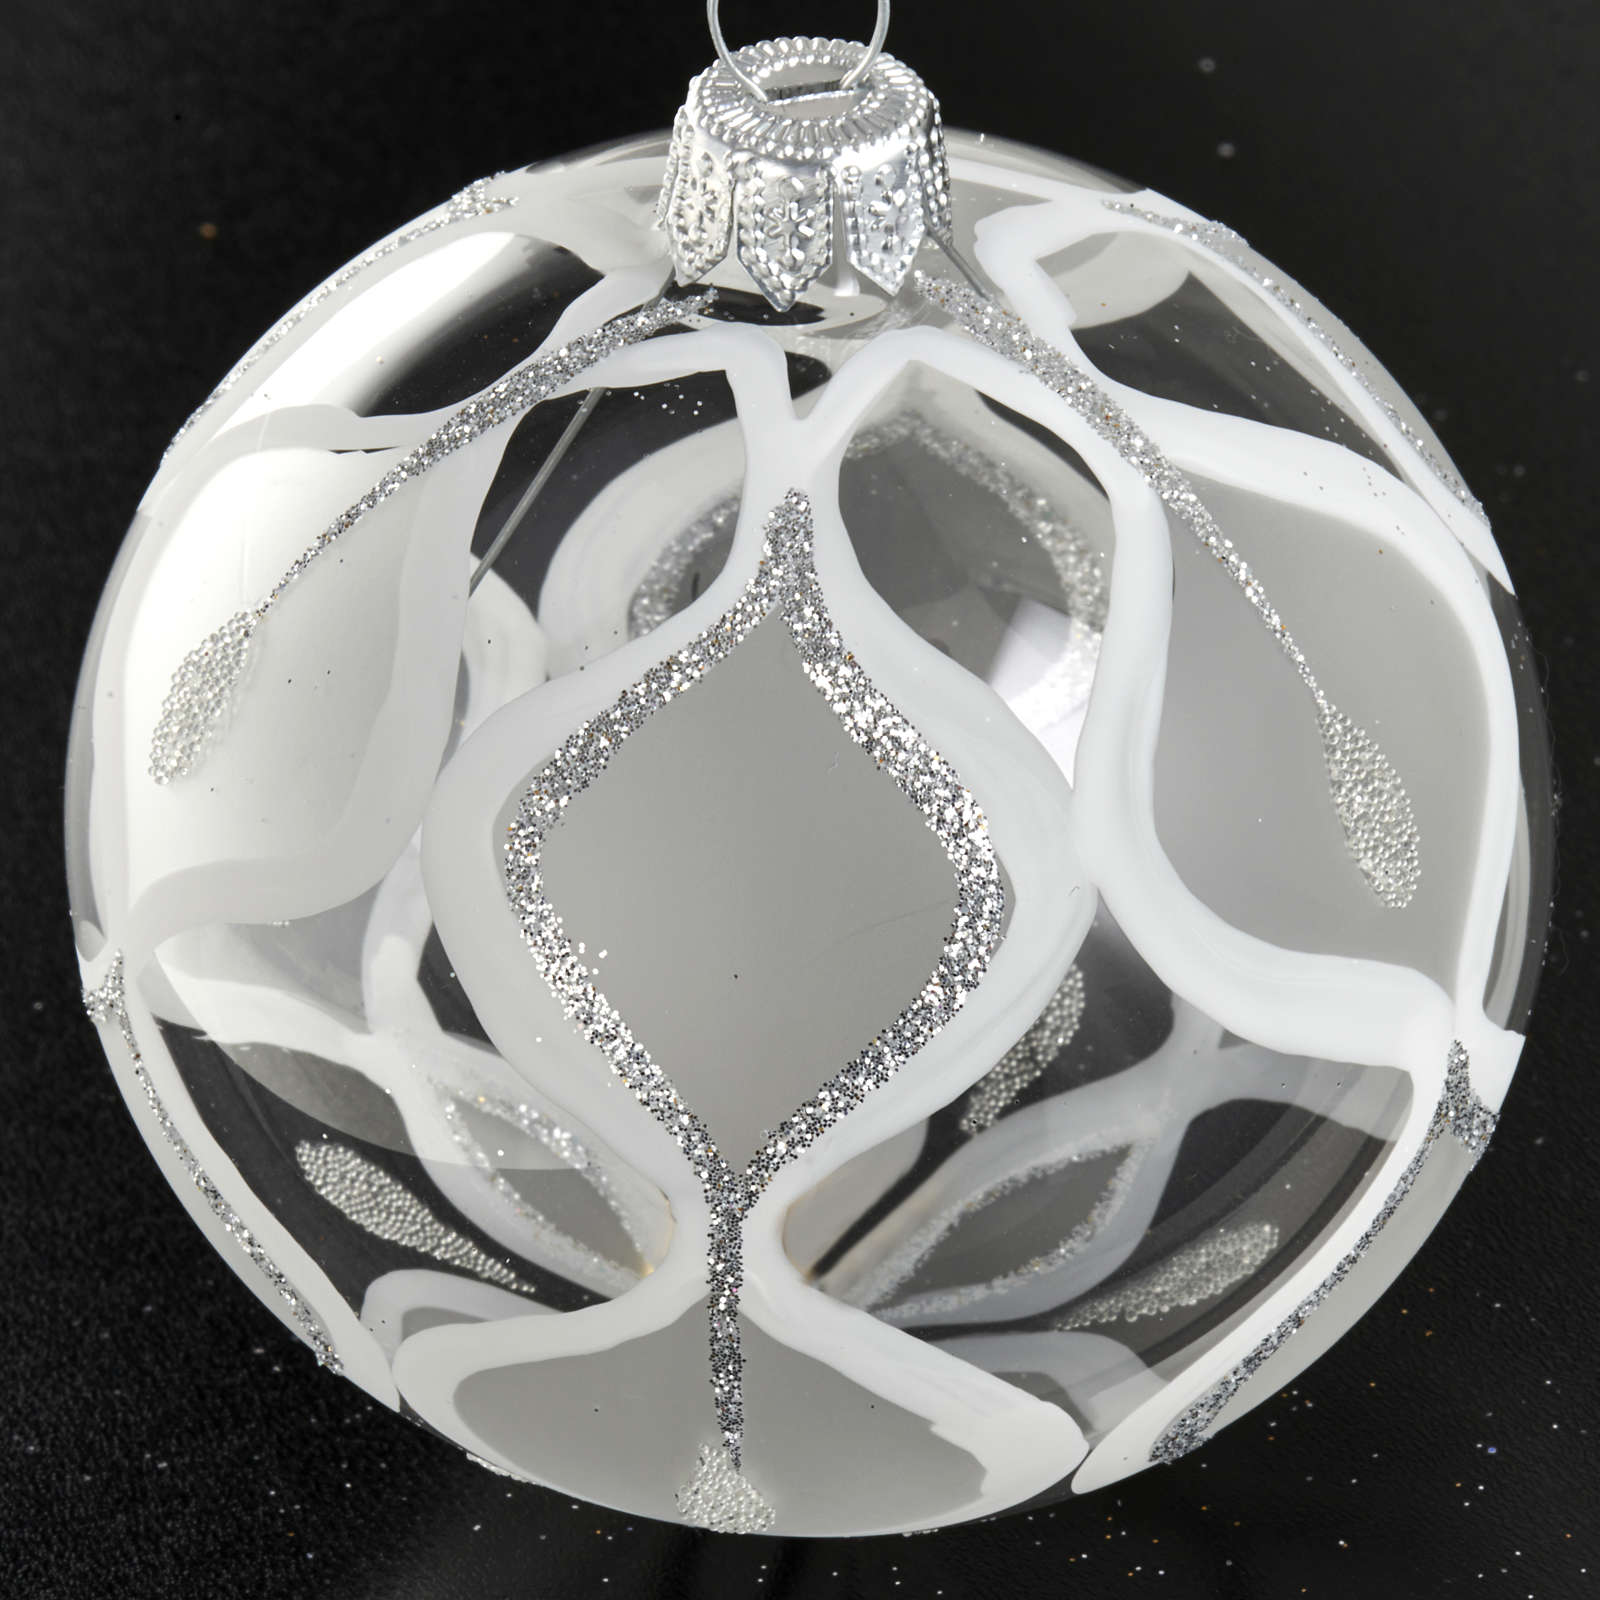 Christmas tree bauble glass with silver decorations, 8cm 4